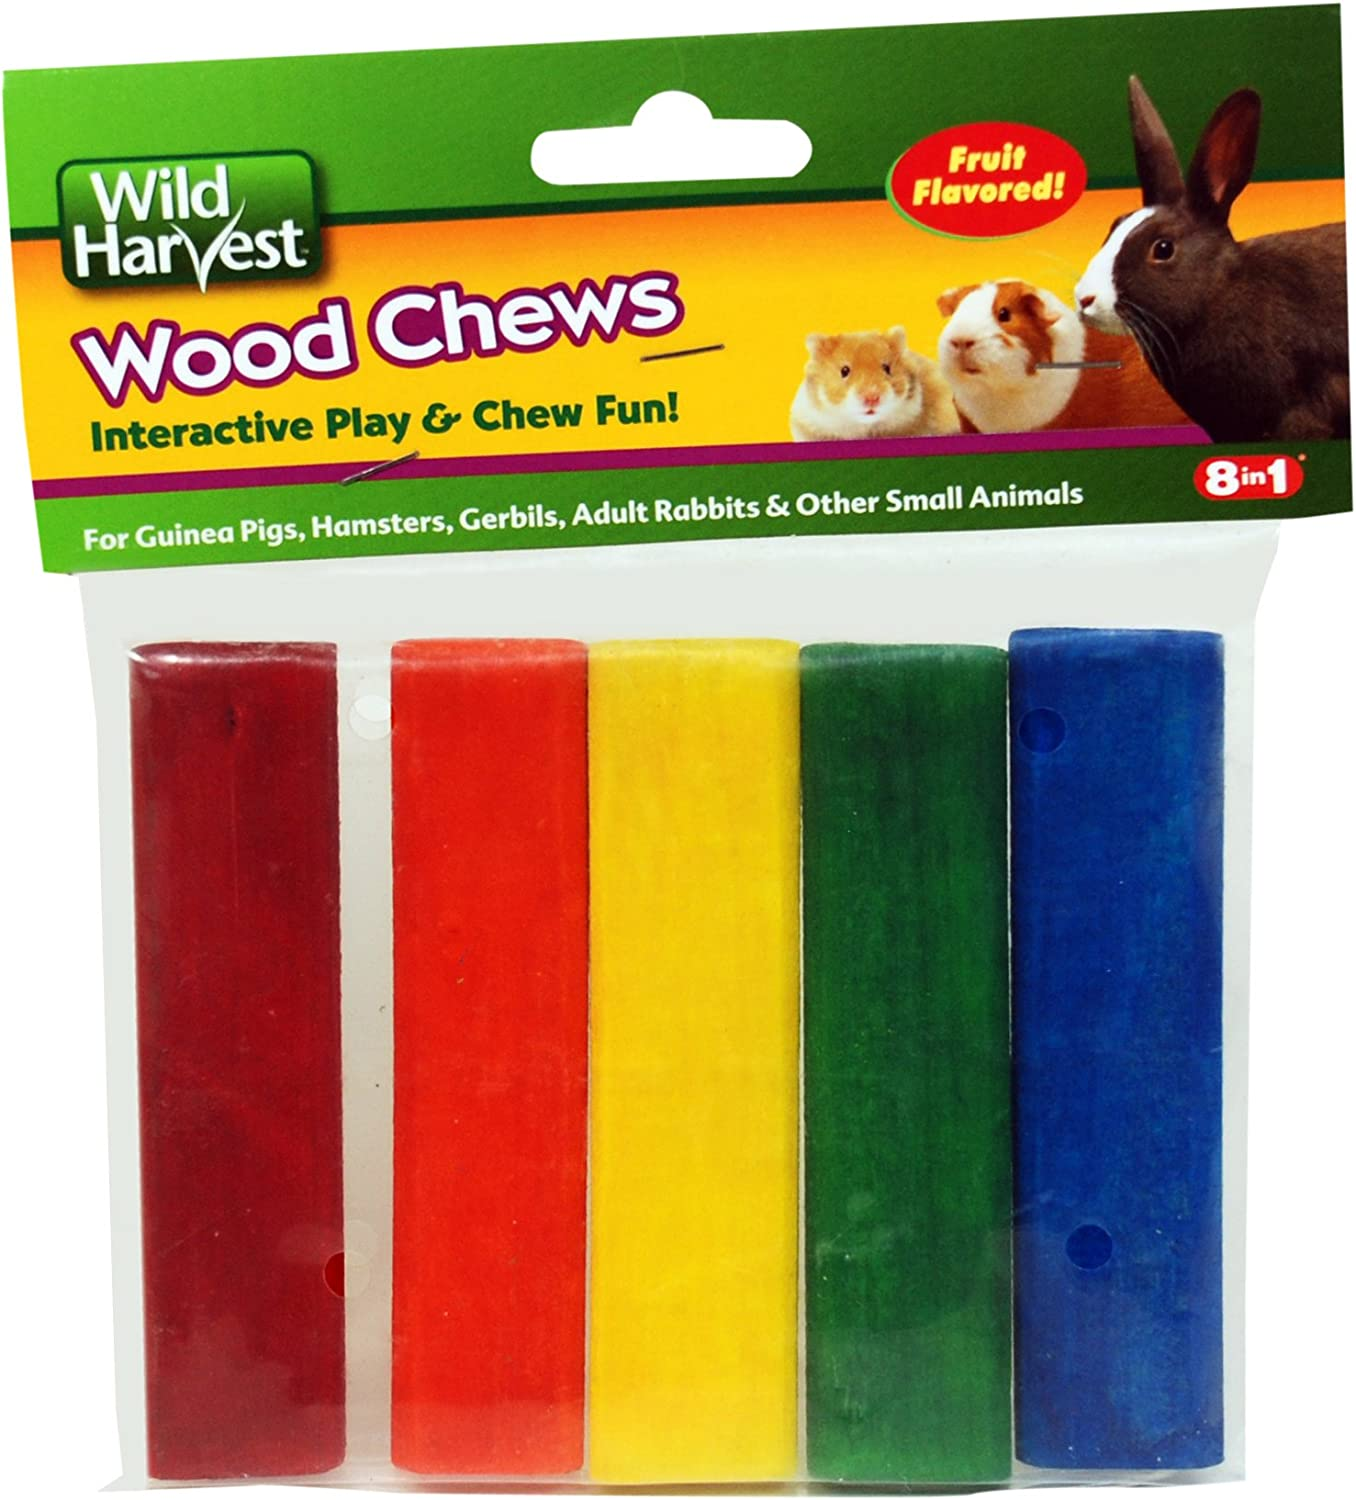 Wild Harvest P-84127 Colored Wood Chews for Small Animals, Fruit Flavored, 5-Count